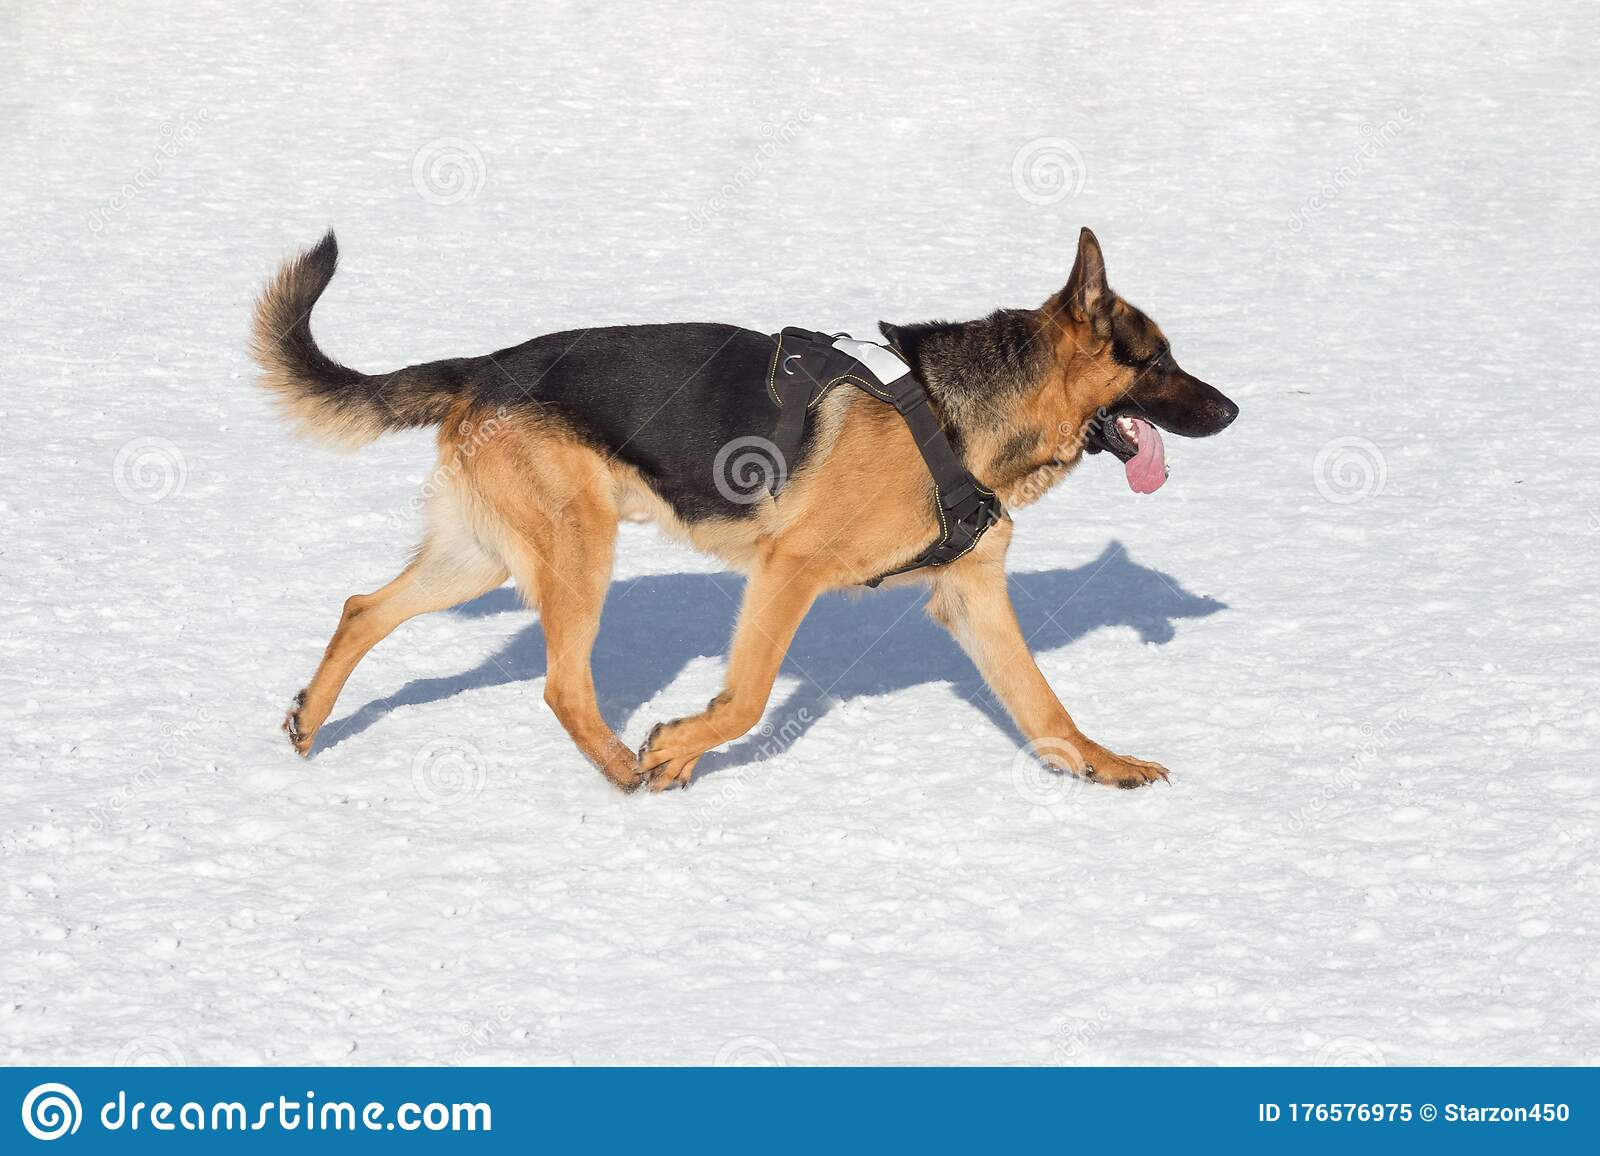 Short Haired German Shepherd Dog Is Running On A White Snow In The Winter Park Pet Animals Stock Image Image Of Jaws German 176576975